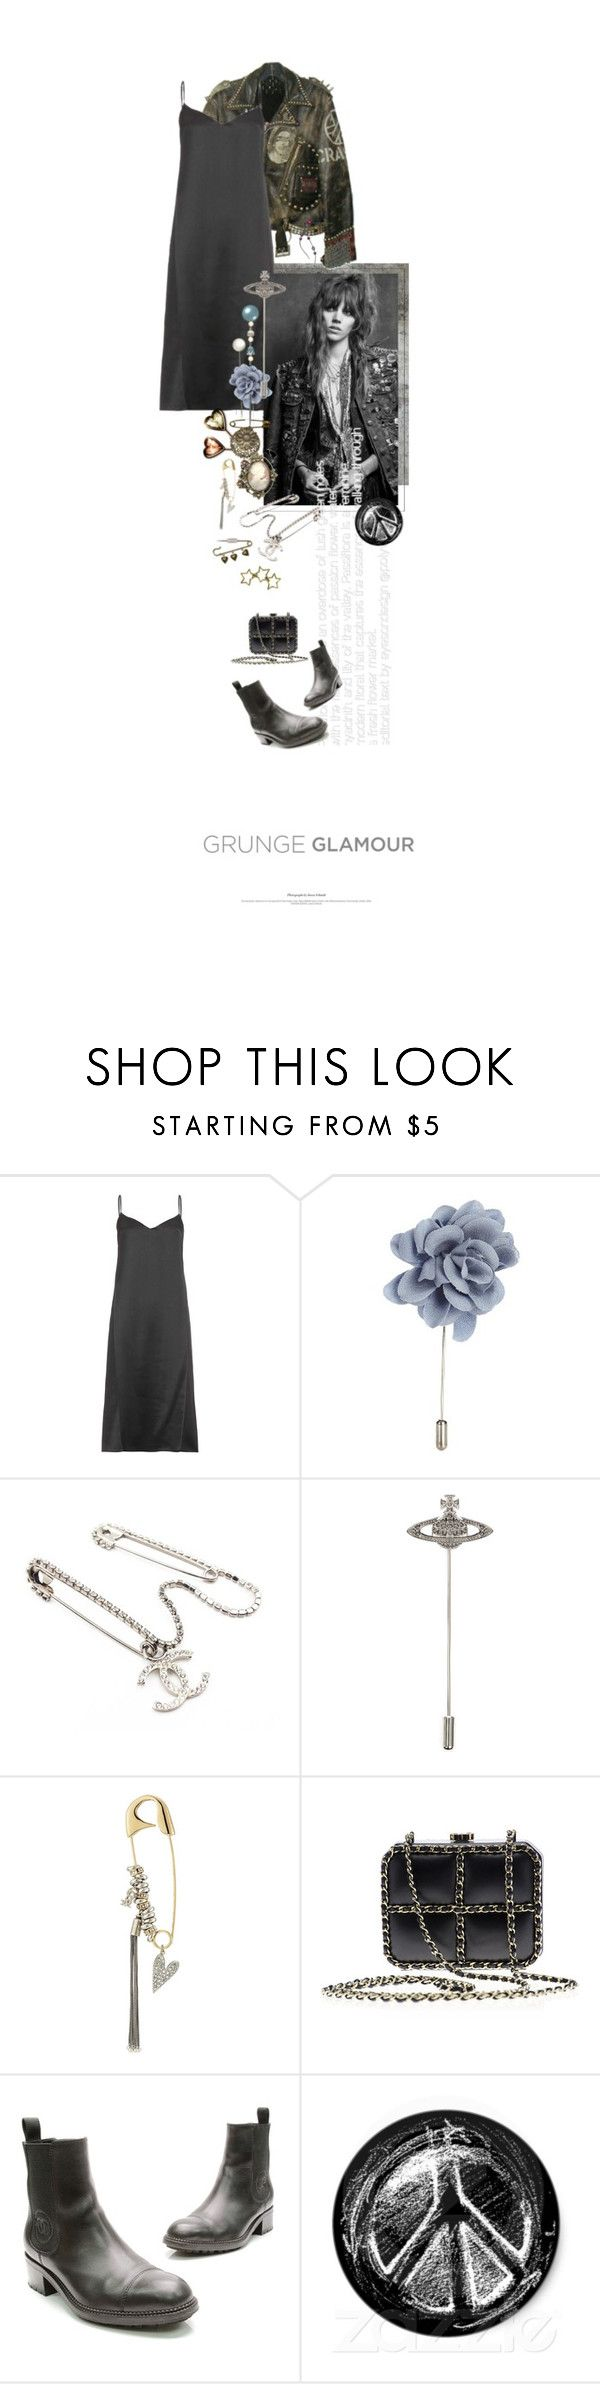 """Sur Sa Veste De Cuir / On His Leather Jacket"" by halfmoonrun ❤ liked on Polyvore featuring WALL, Nina Ricci, Lanvin, Chanel, Vivienne Westwood, Sonia Rykiel, Tiffany & Co. and pins"